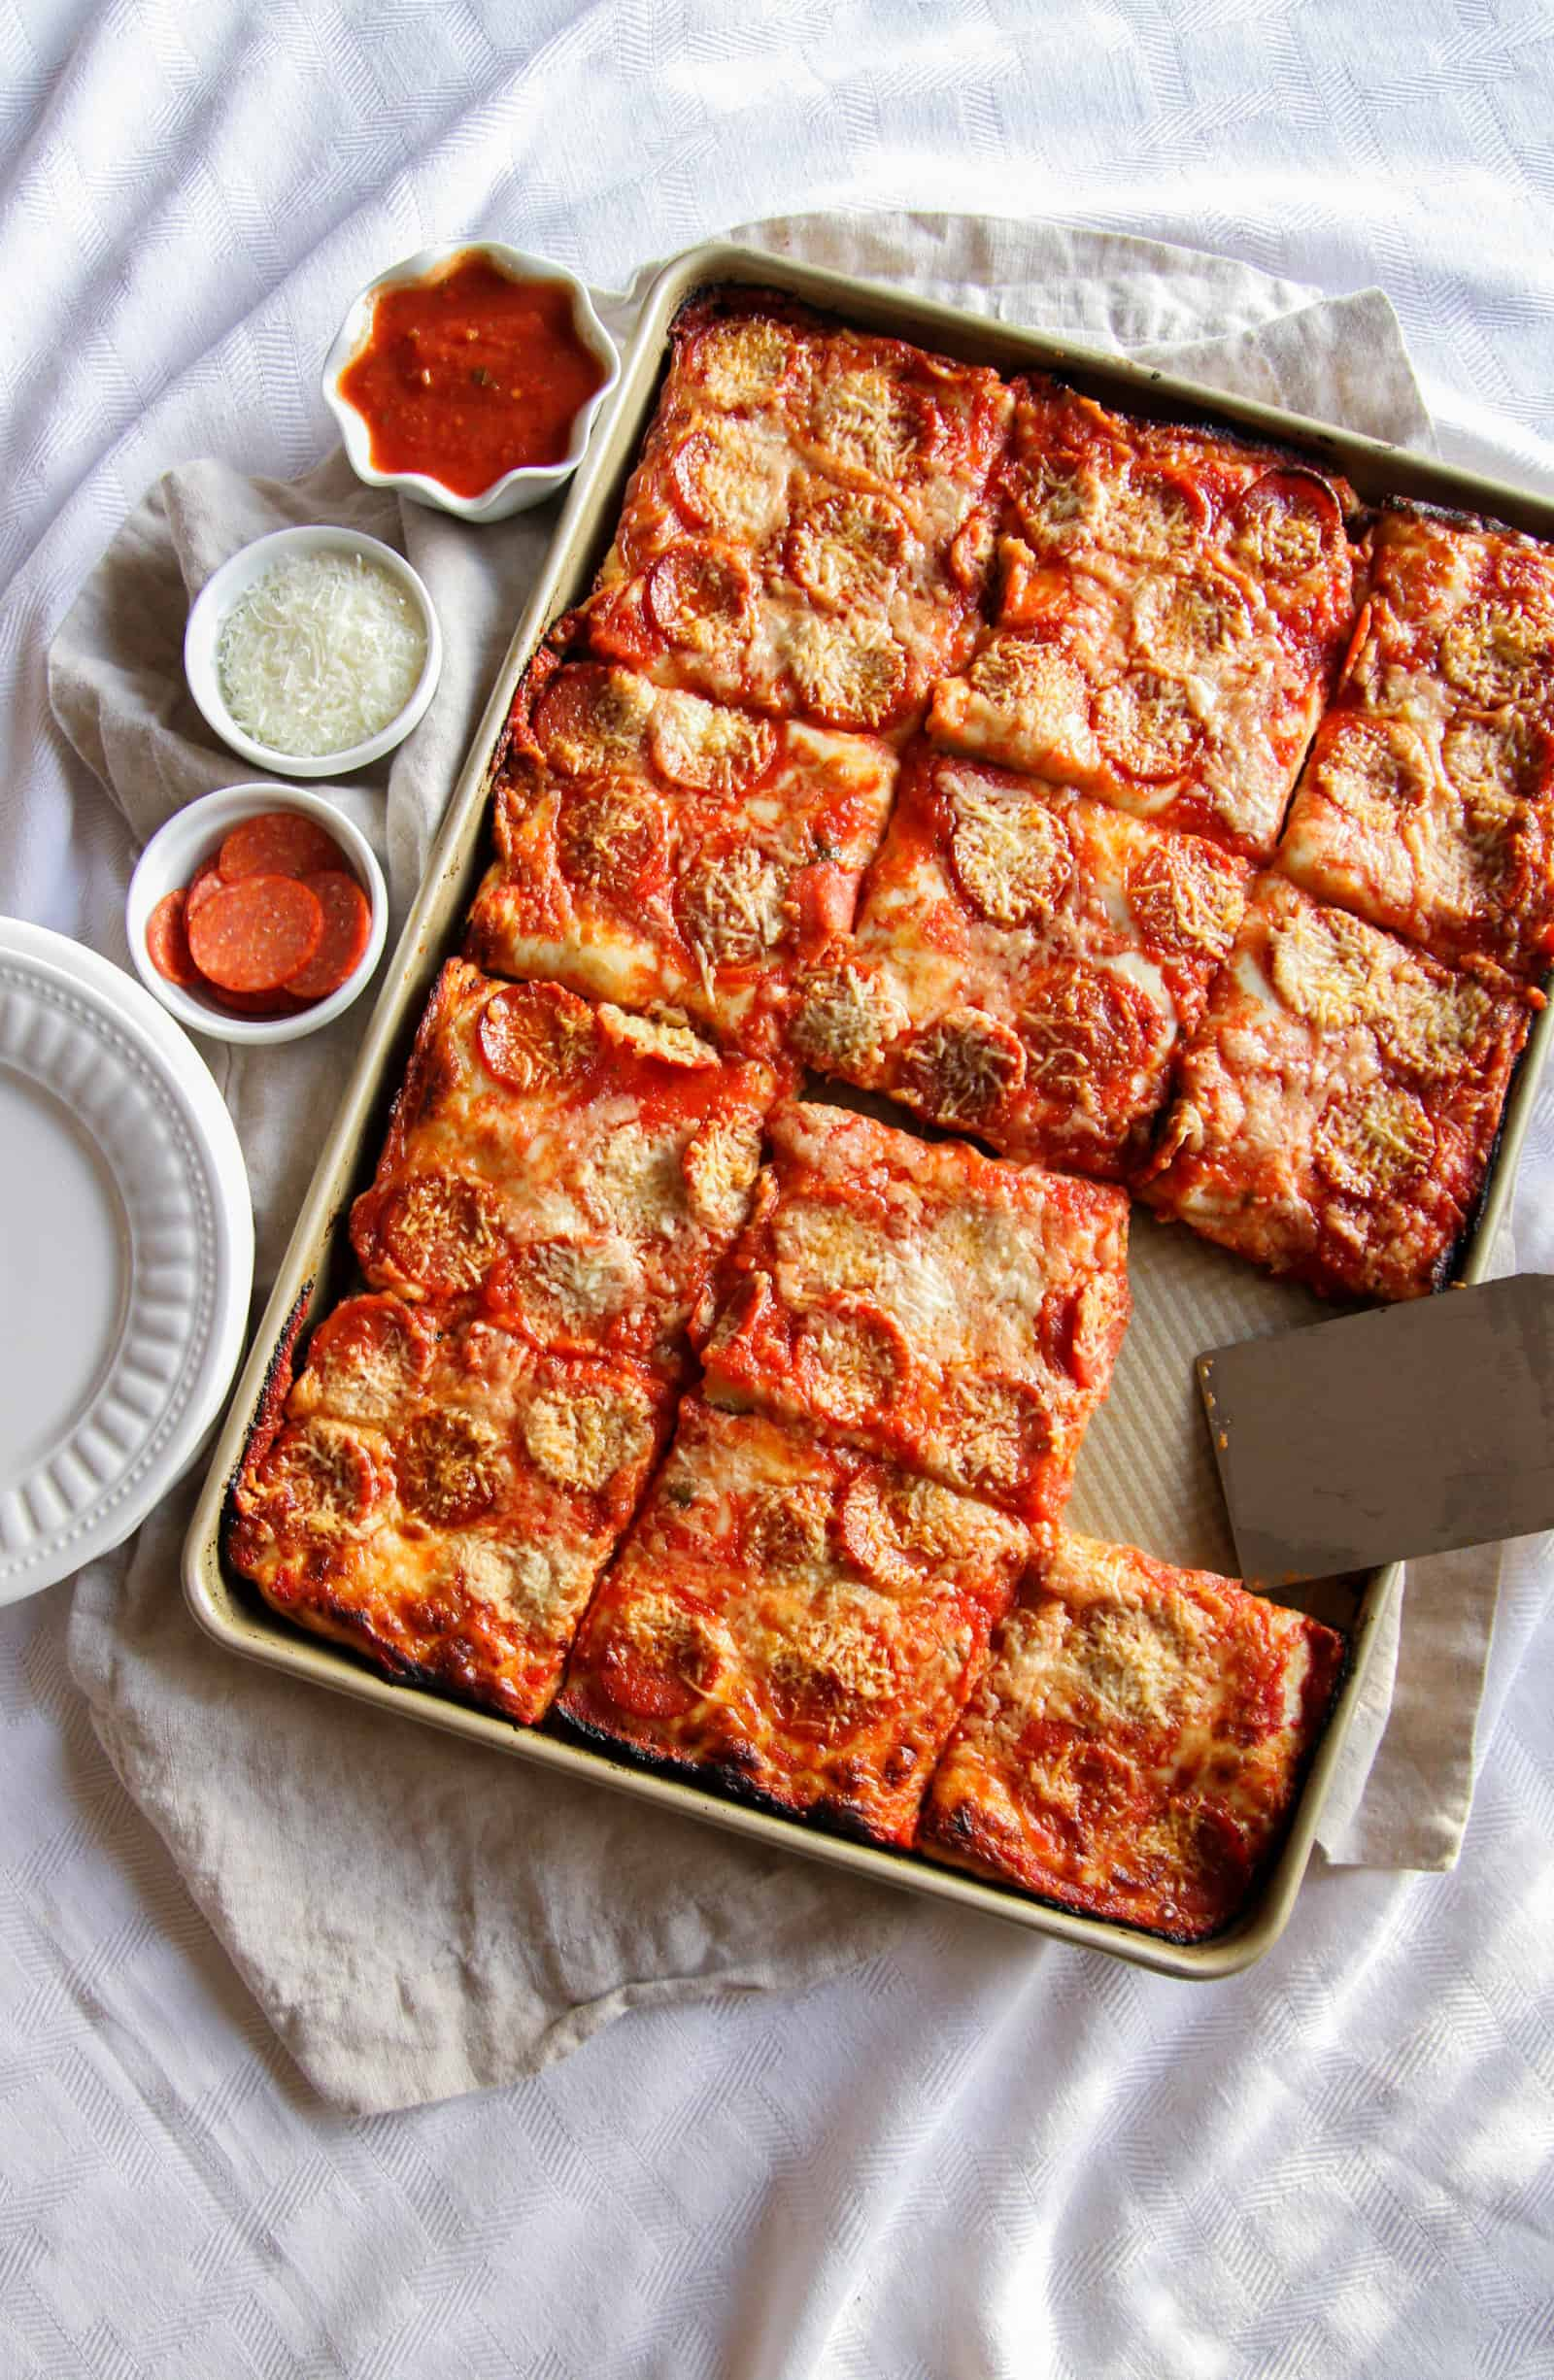 The most amazing and delicious sheet pan pizza